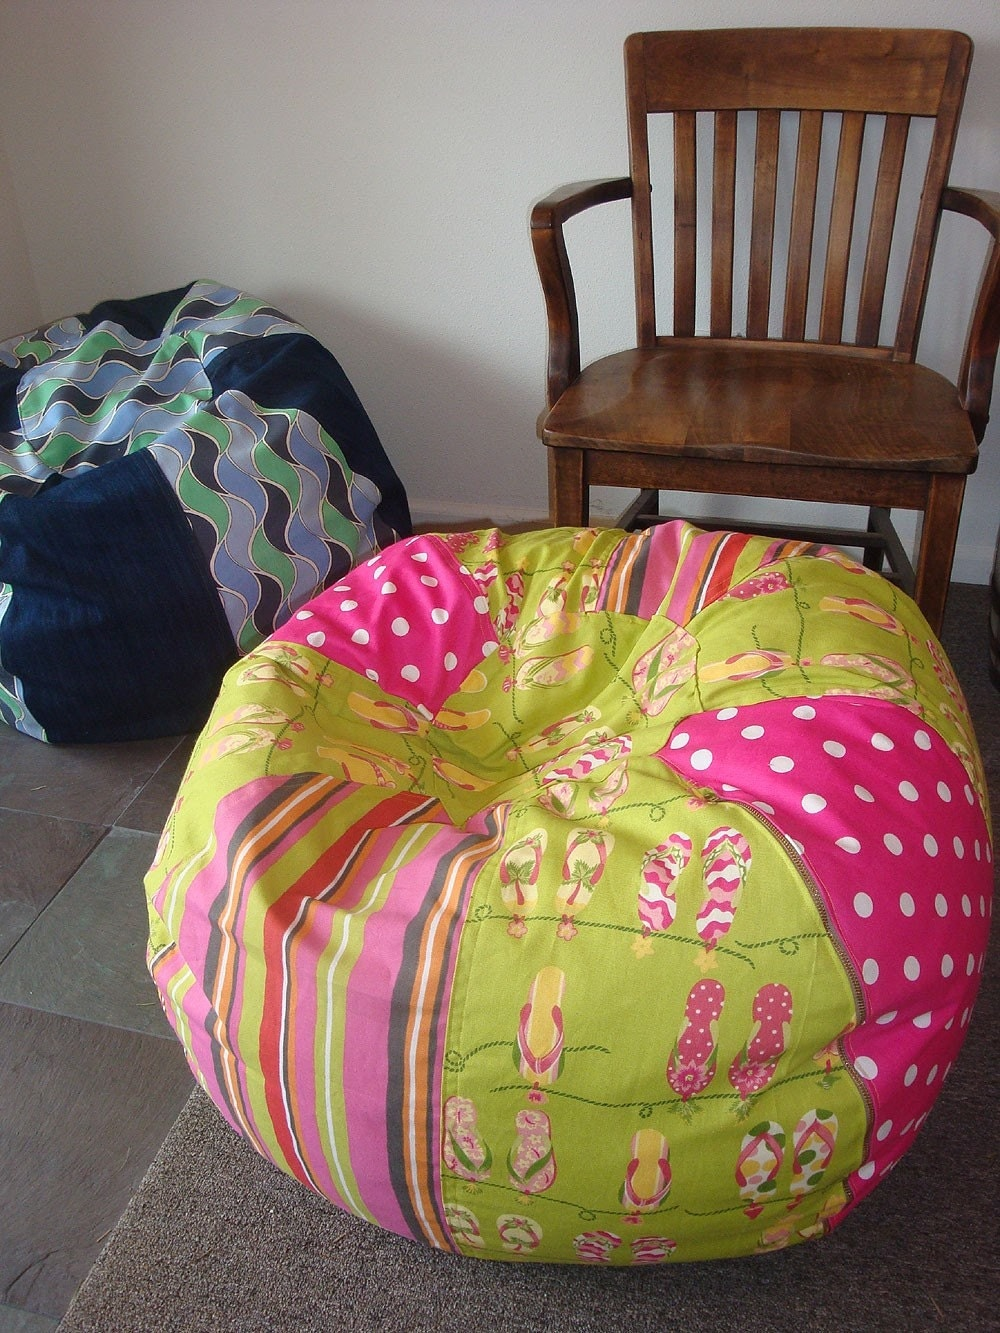 Flip Flop and Stripes Bean Bag Chair pink and green by Paniolo